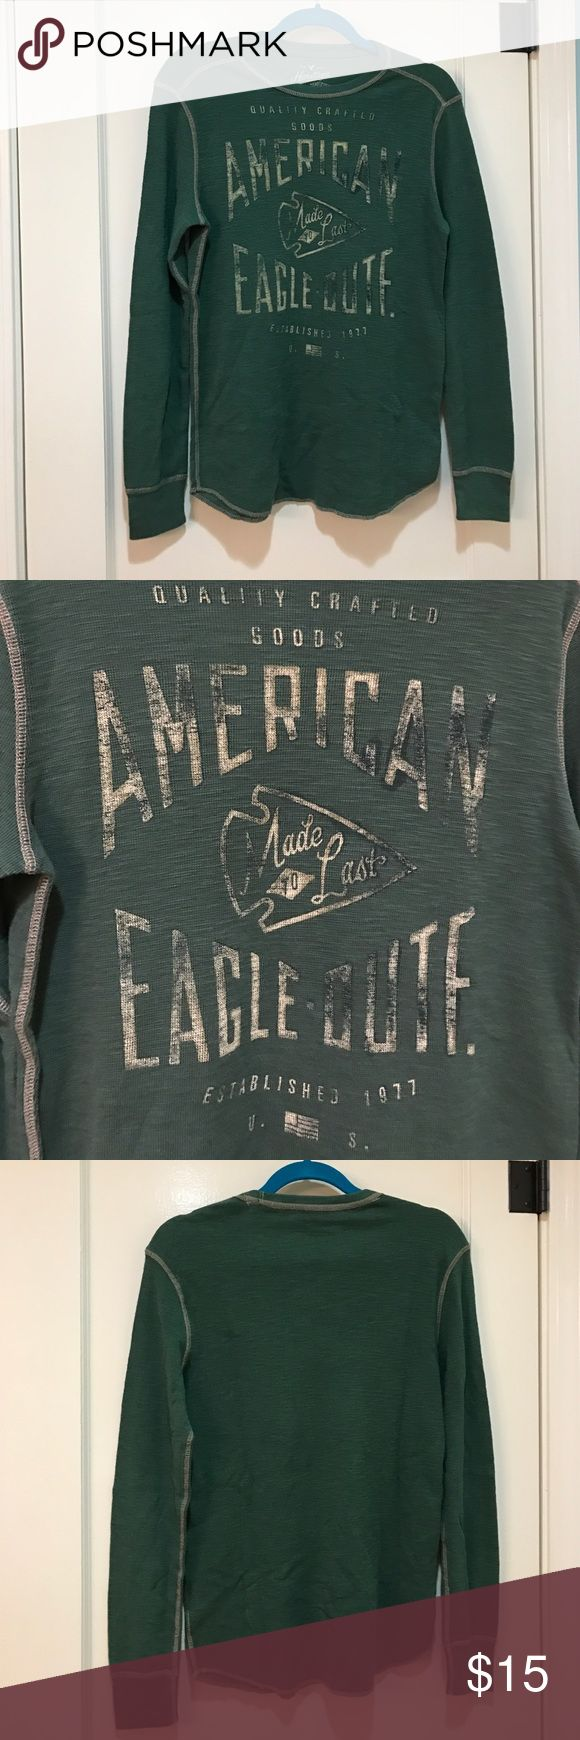 Green American Eagle thermal T-shirt NWOT Green thermal Tshirt.  New without tags.  Comfort and style all in one. American Eagle Outfitters Shirts Tees - Long Sleeve